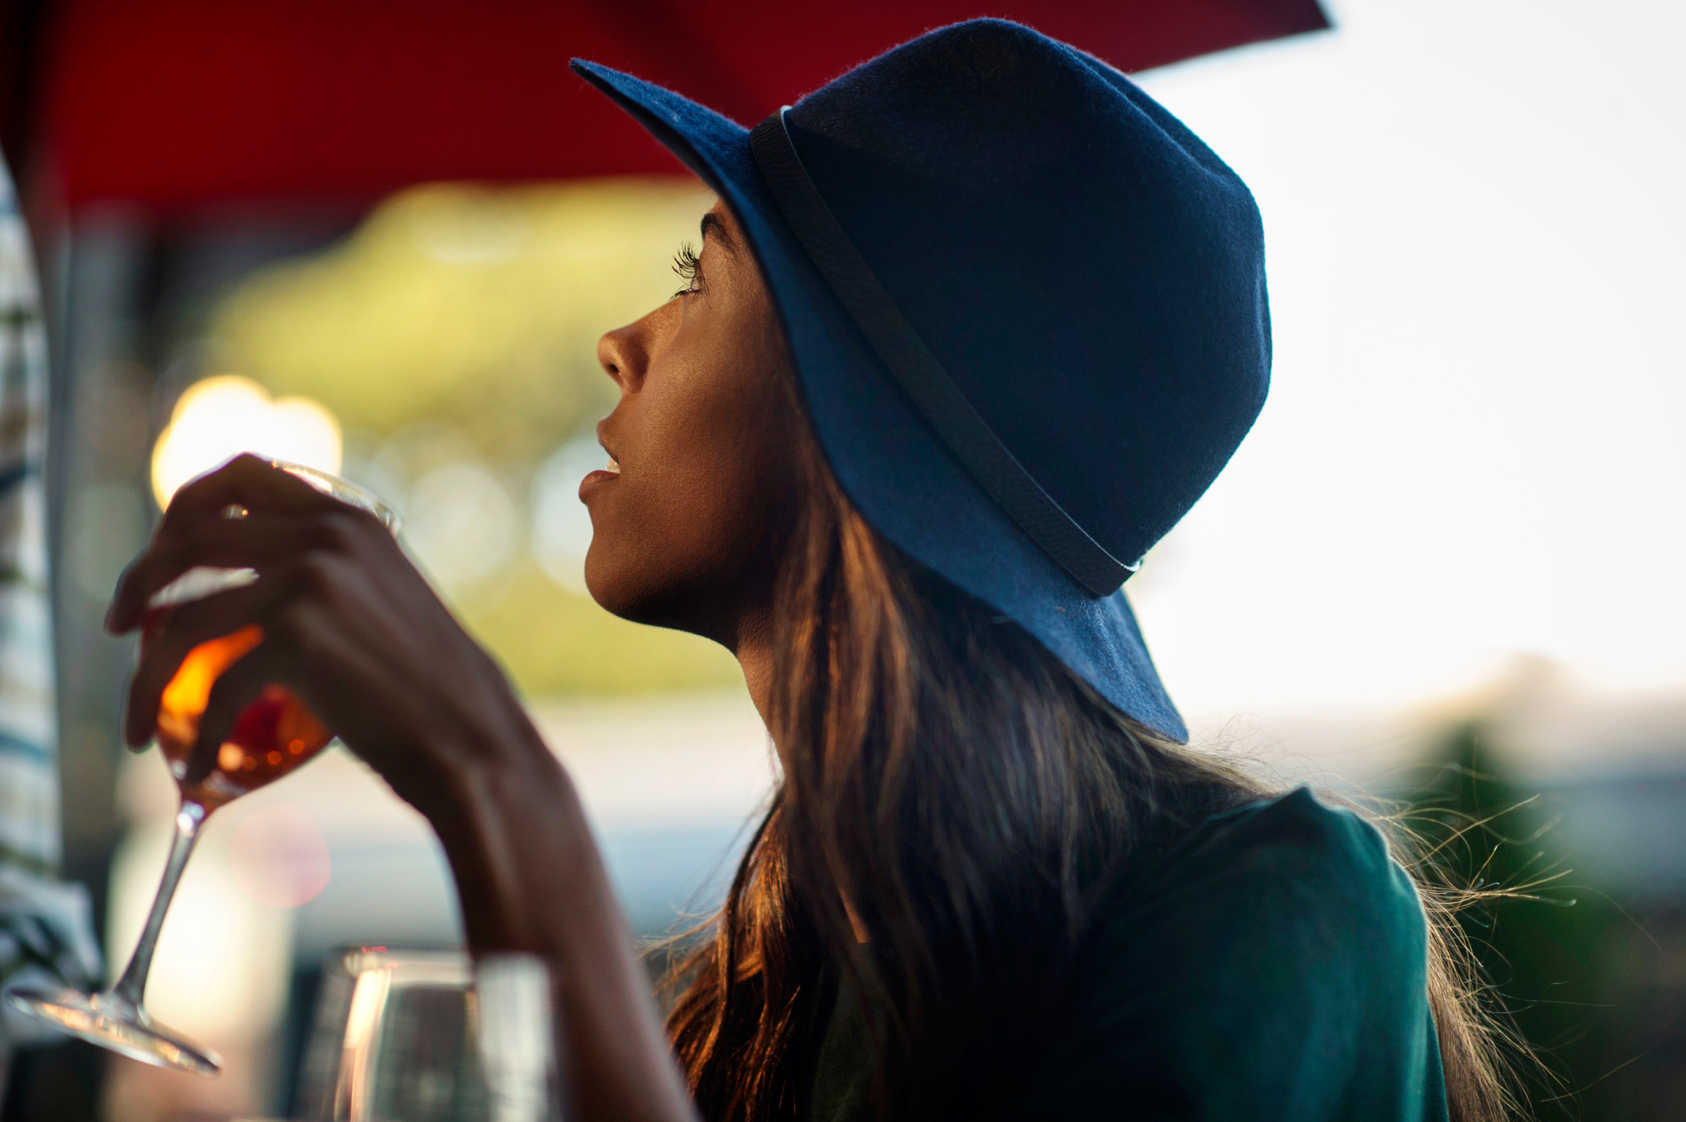 girl in silhouette drinking wine with blue fedora